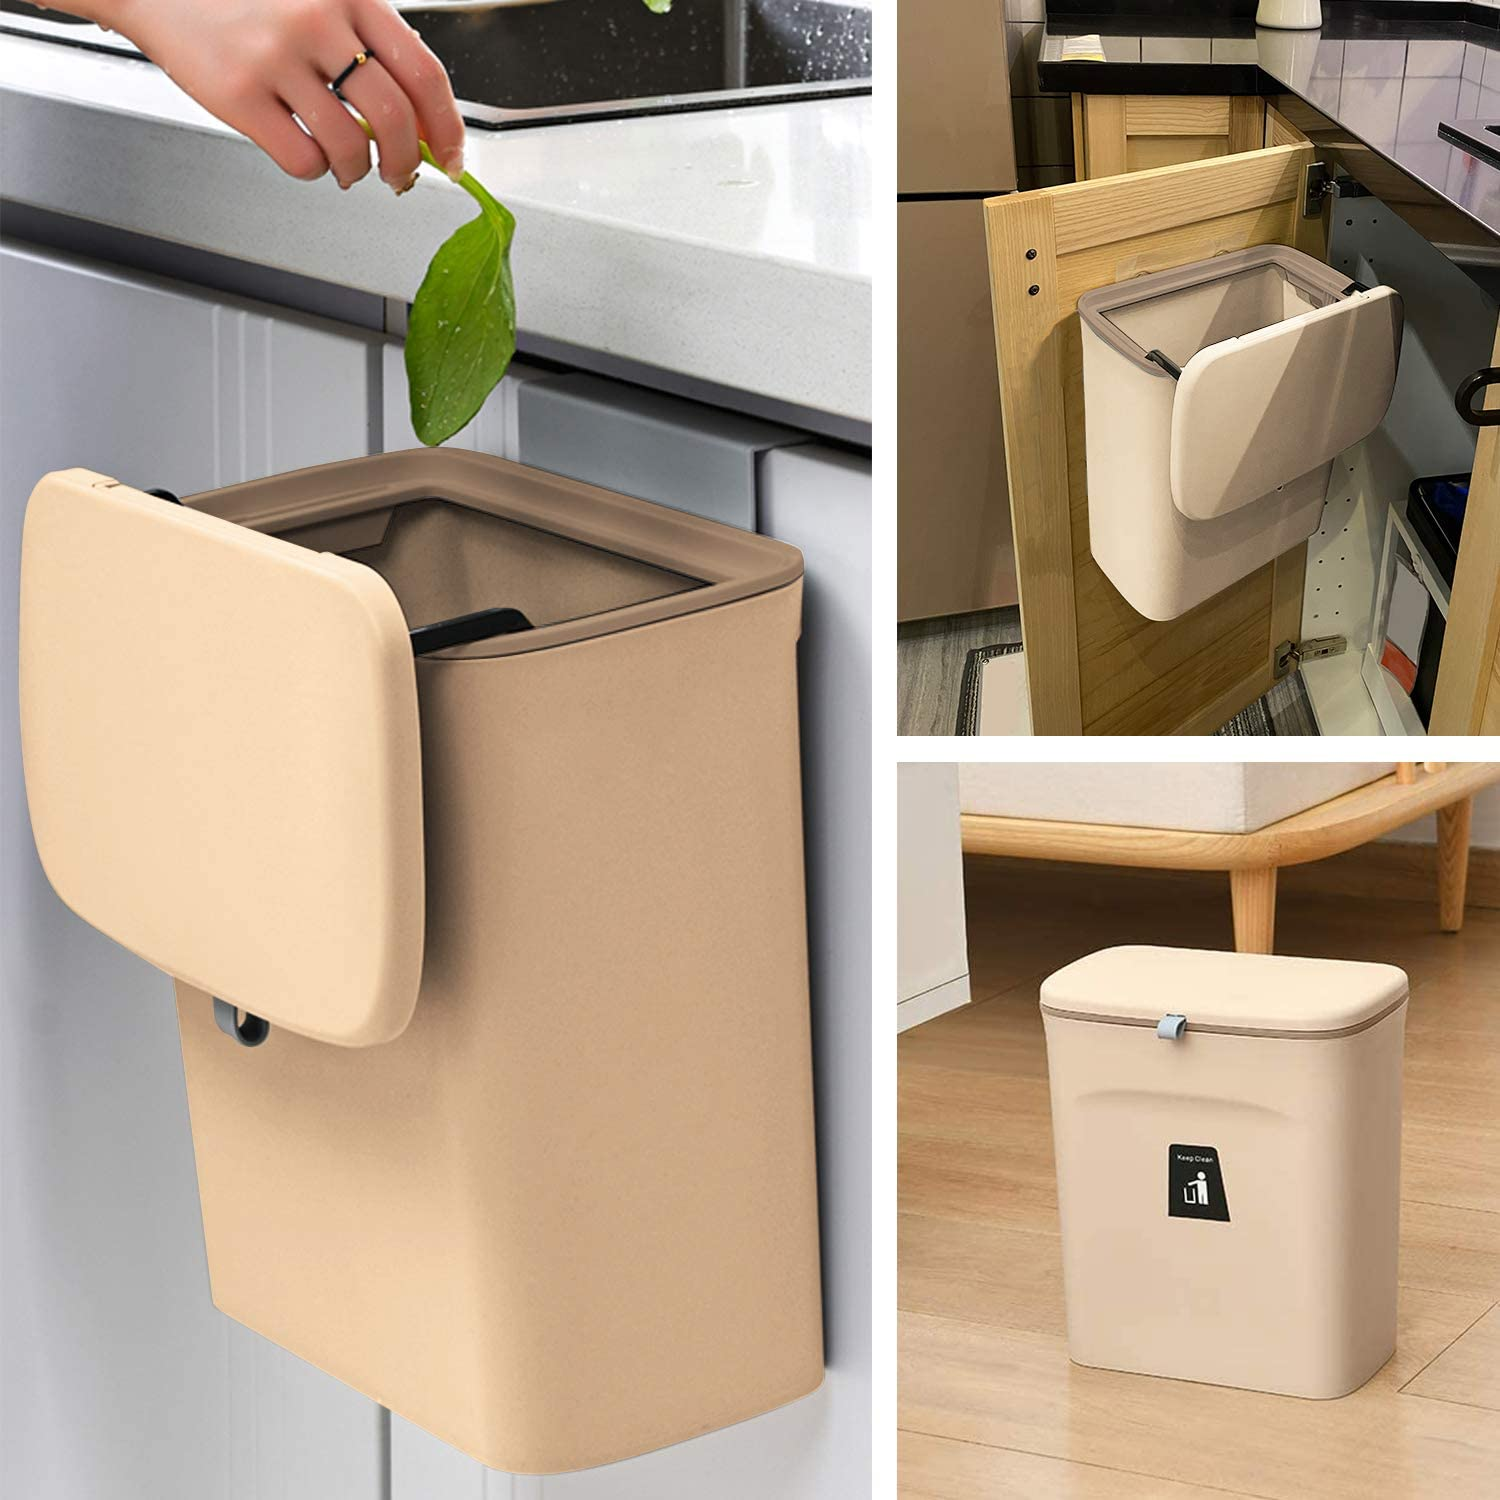 Dailylife 2 4 Gal Hanging Trash Can For Kitchen Cabinet Door With Lid Wall Mounted Counter Waste Compost Bin White Small Under Sink Garbage Can For Bathroom Plastic Kitchen Trash Cans Waste